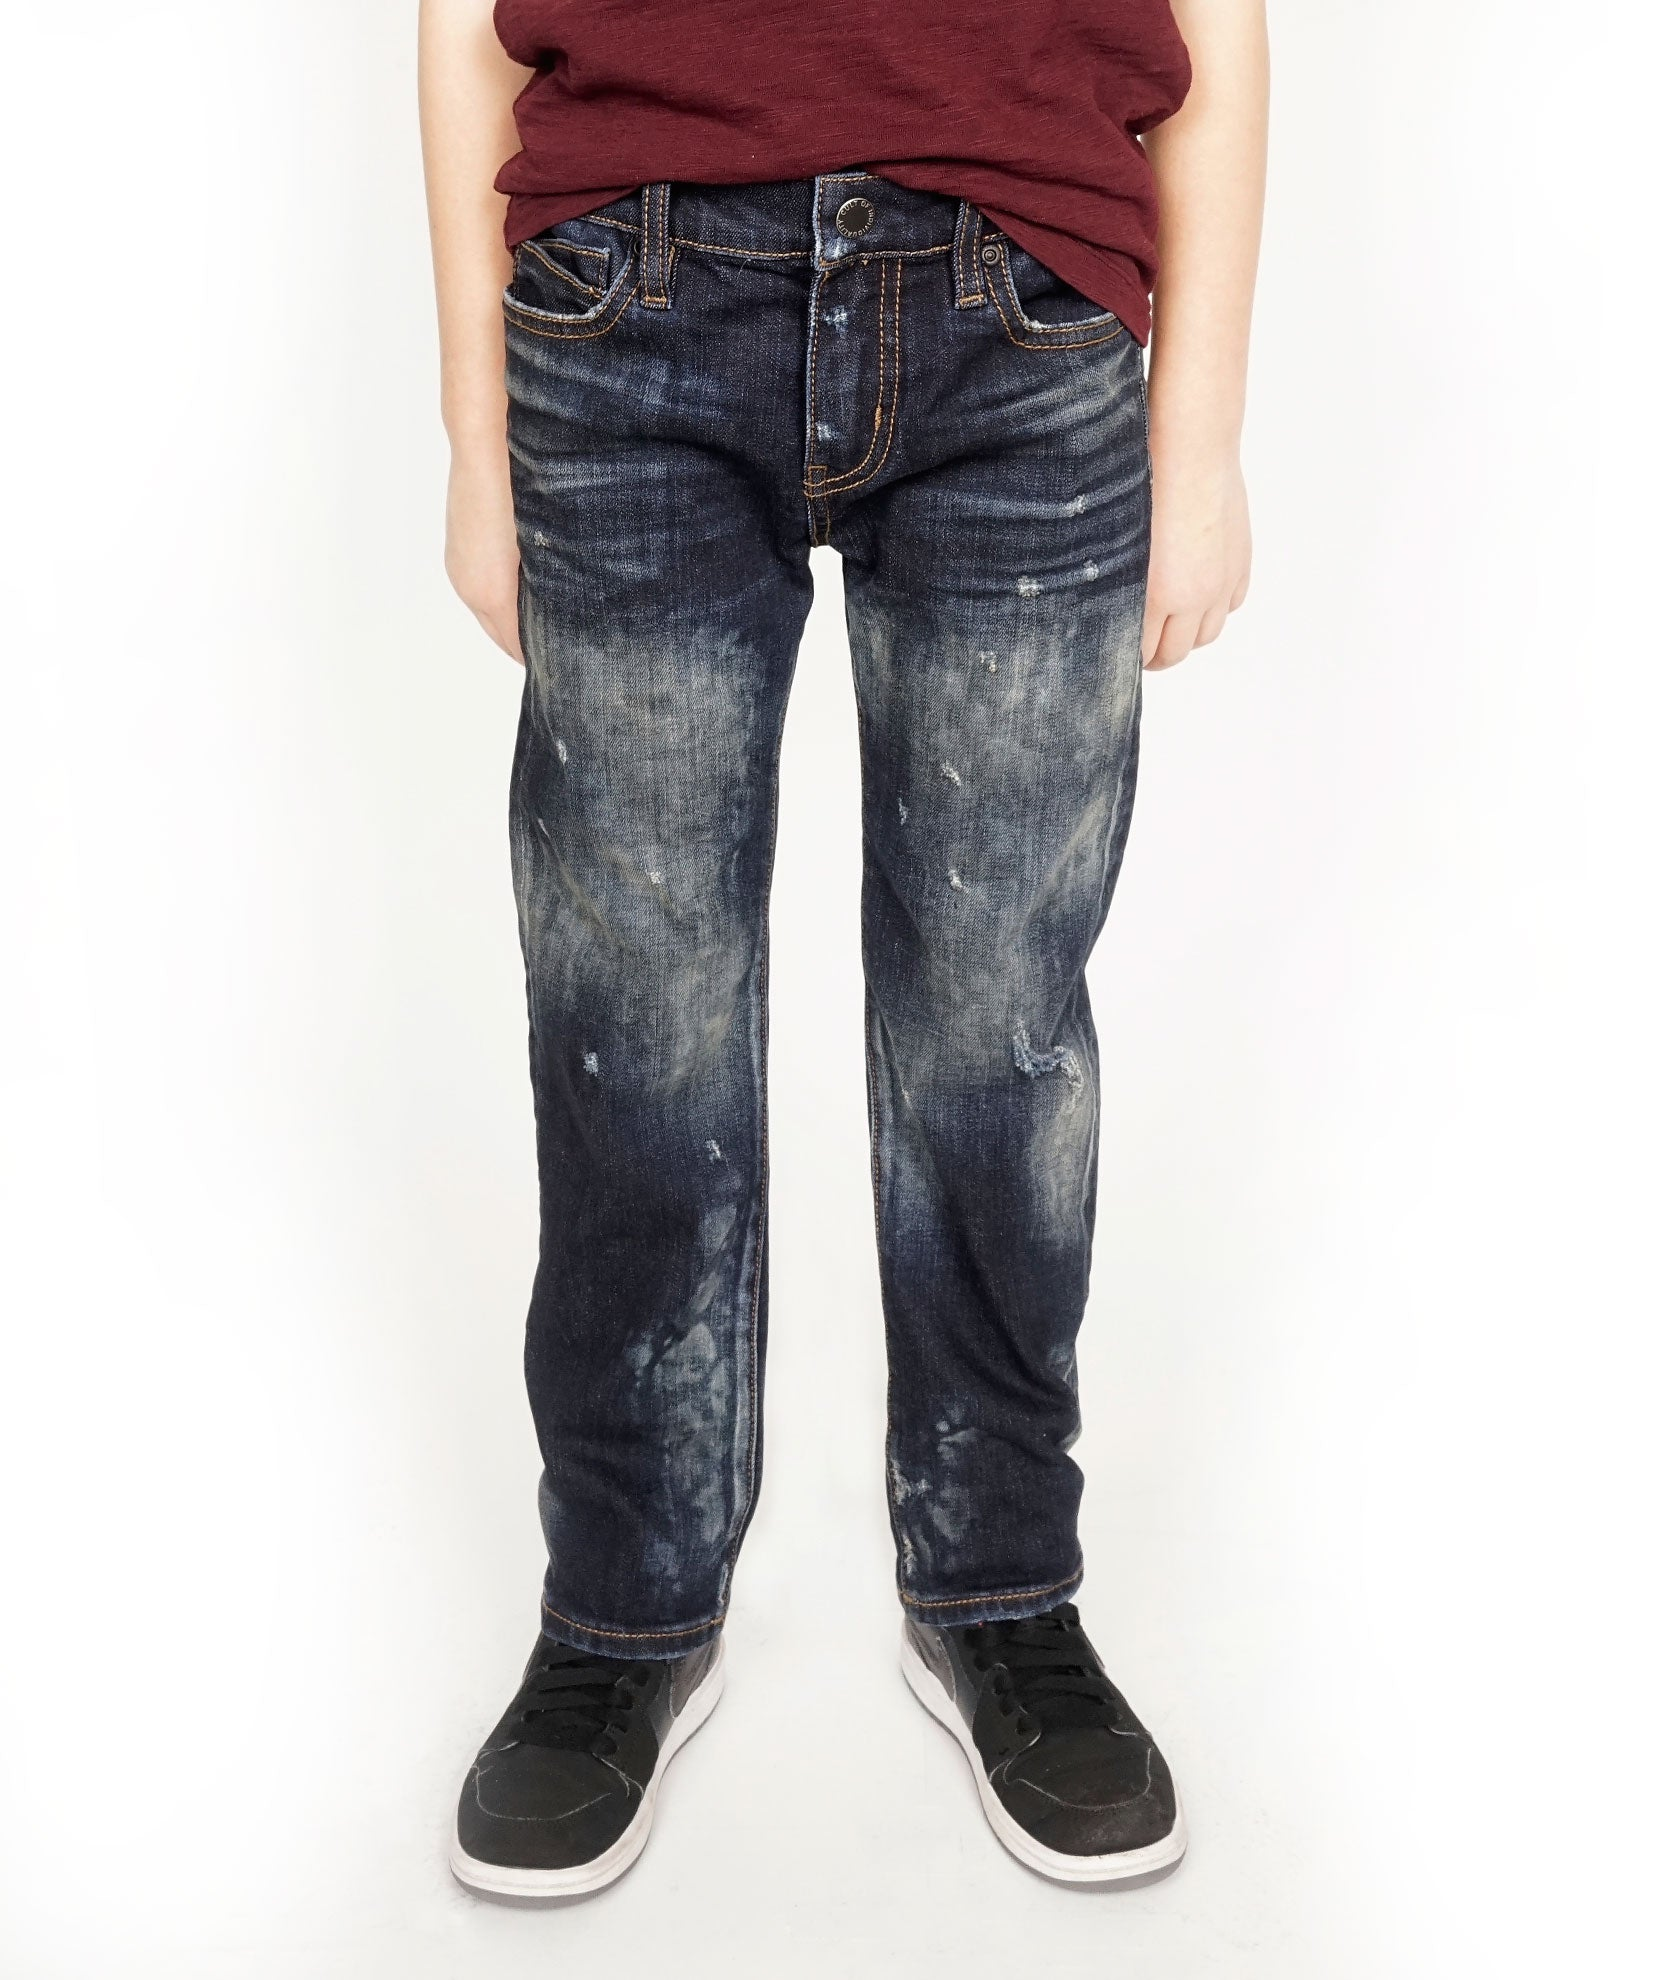 Kid's Rogue Slim Straight Stretch Denim Jeans in Smog${product_sku}